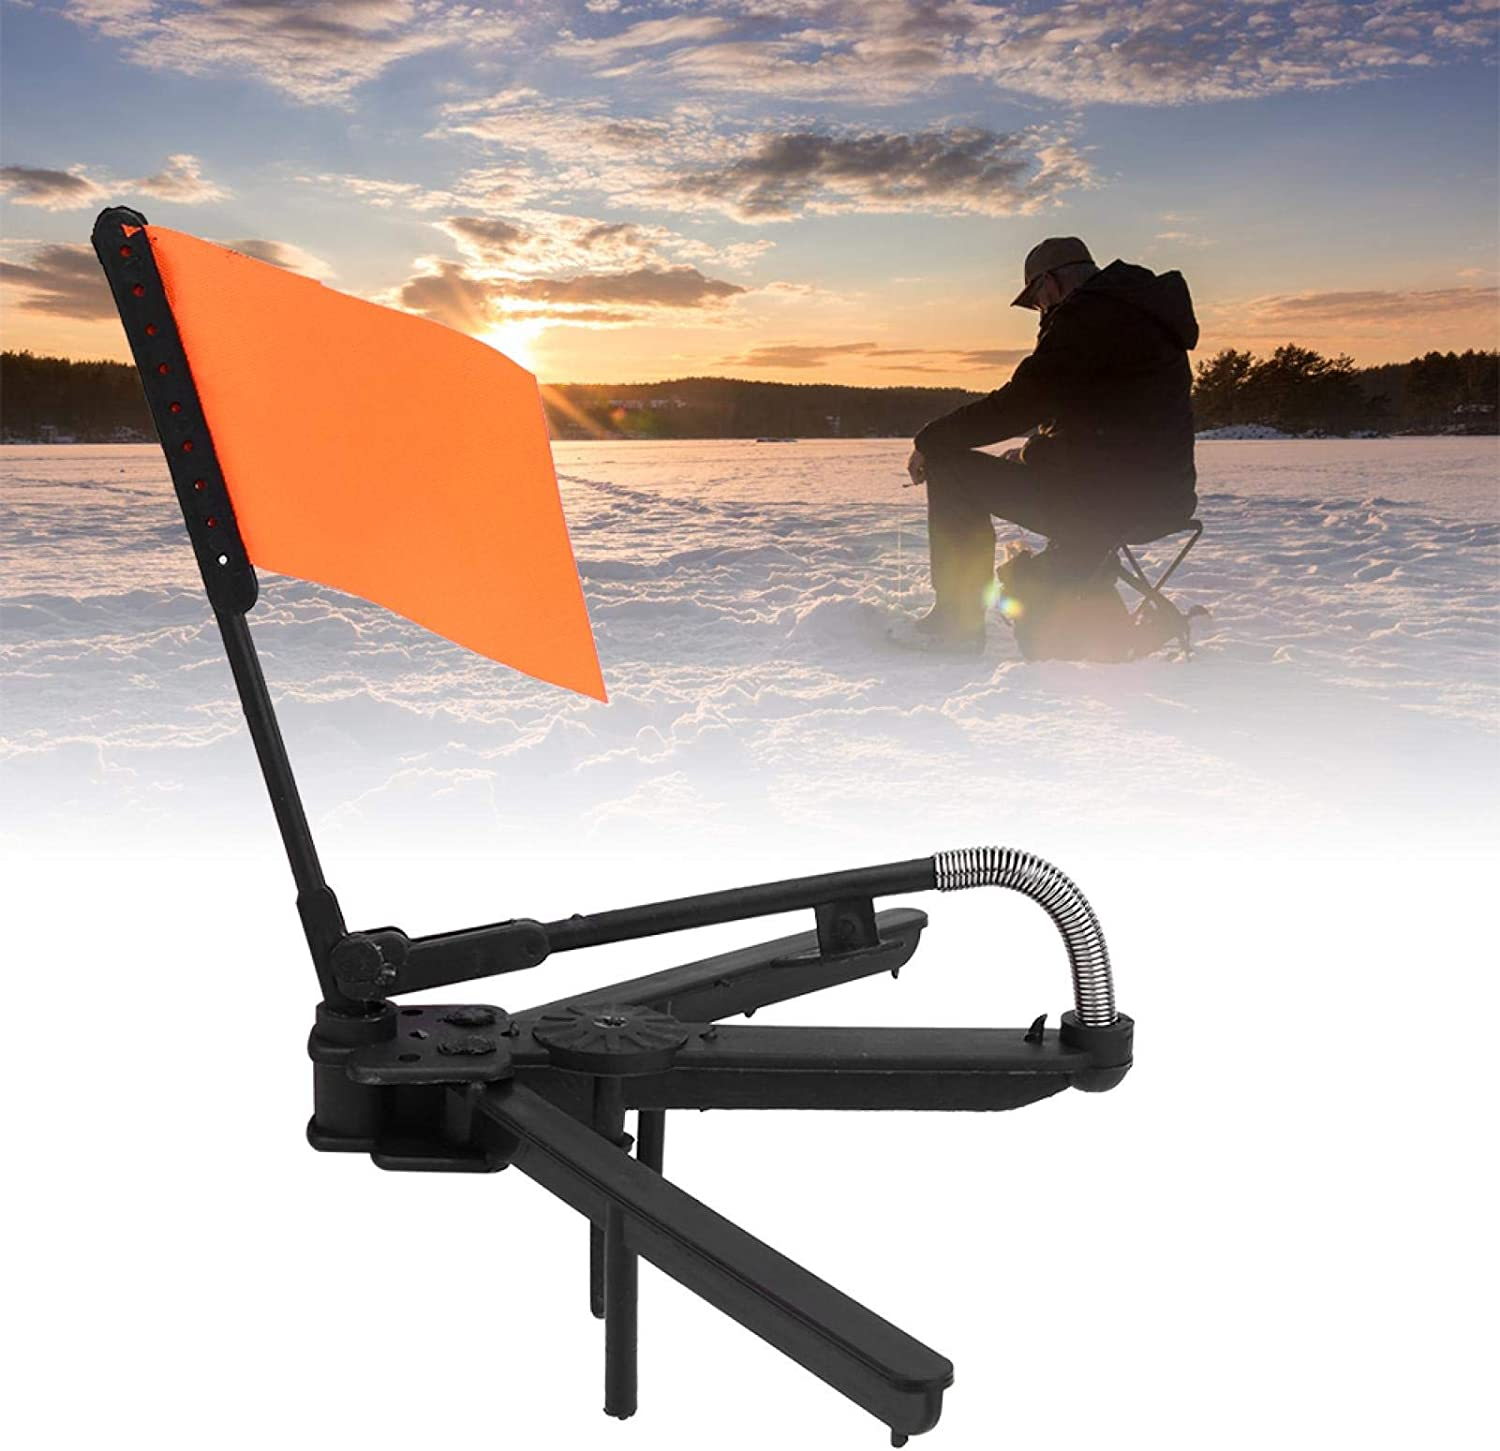 Gaeirt Ice Fishing Outlet ☆ Free Shipping Virginia Beach Mall Rod Easy to Bend Bobbin Tension i The Without